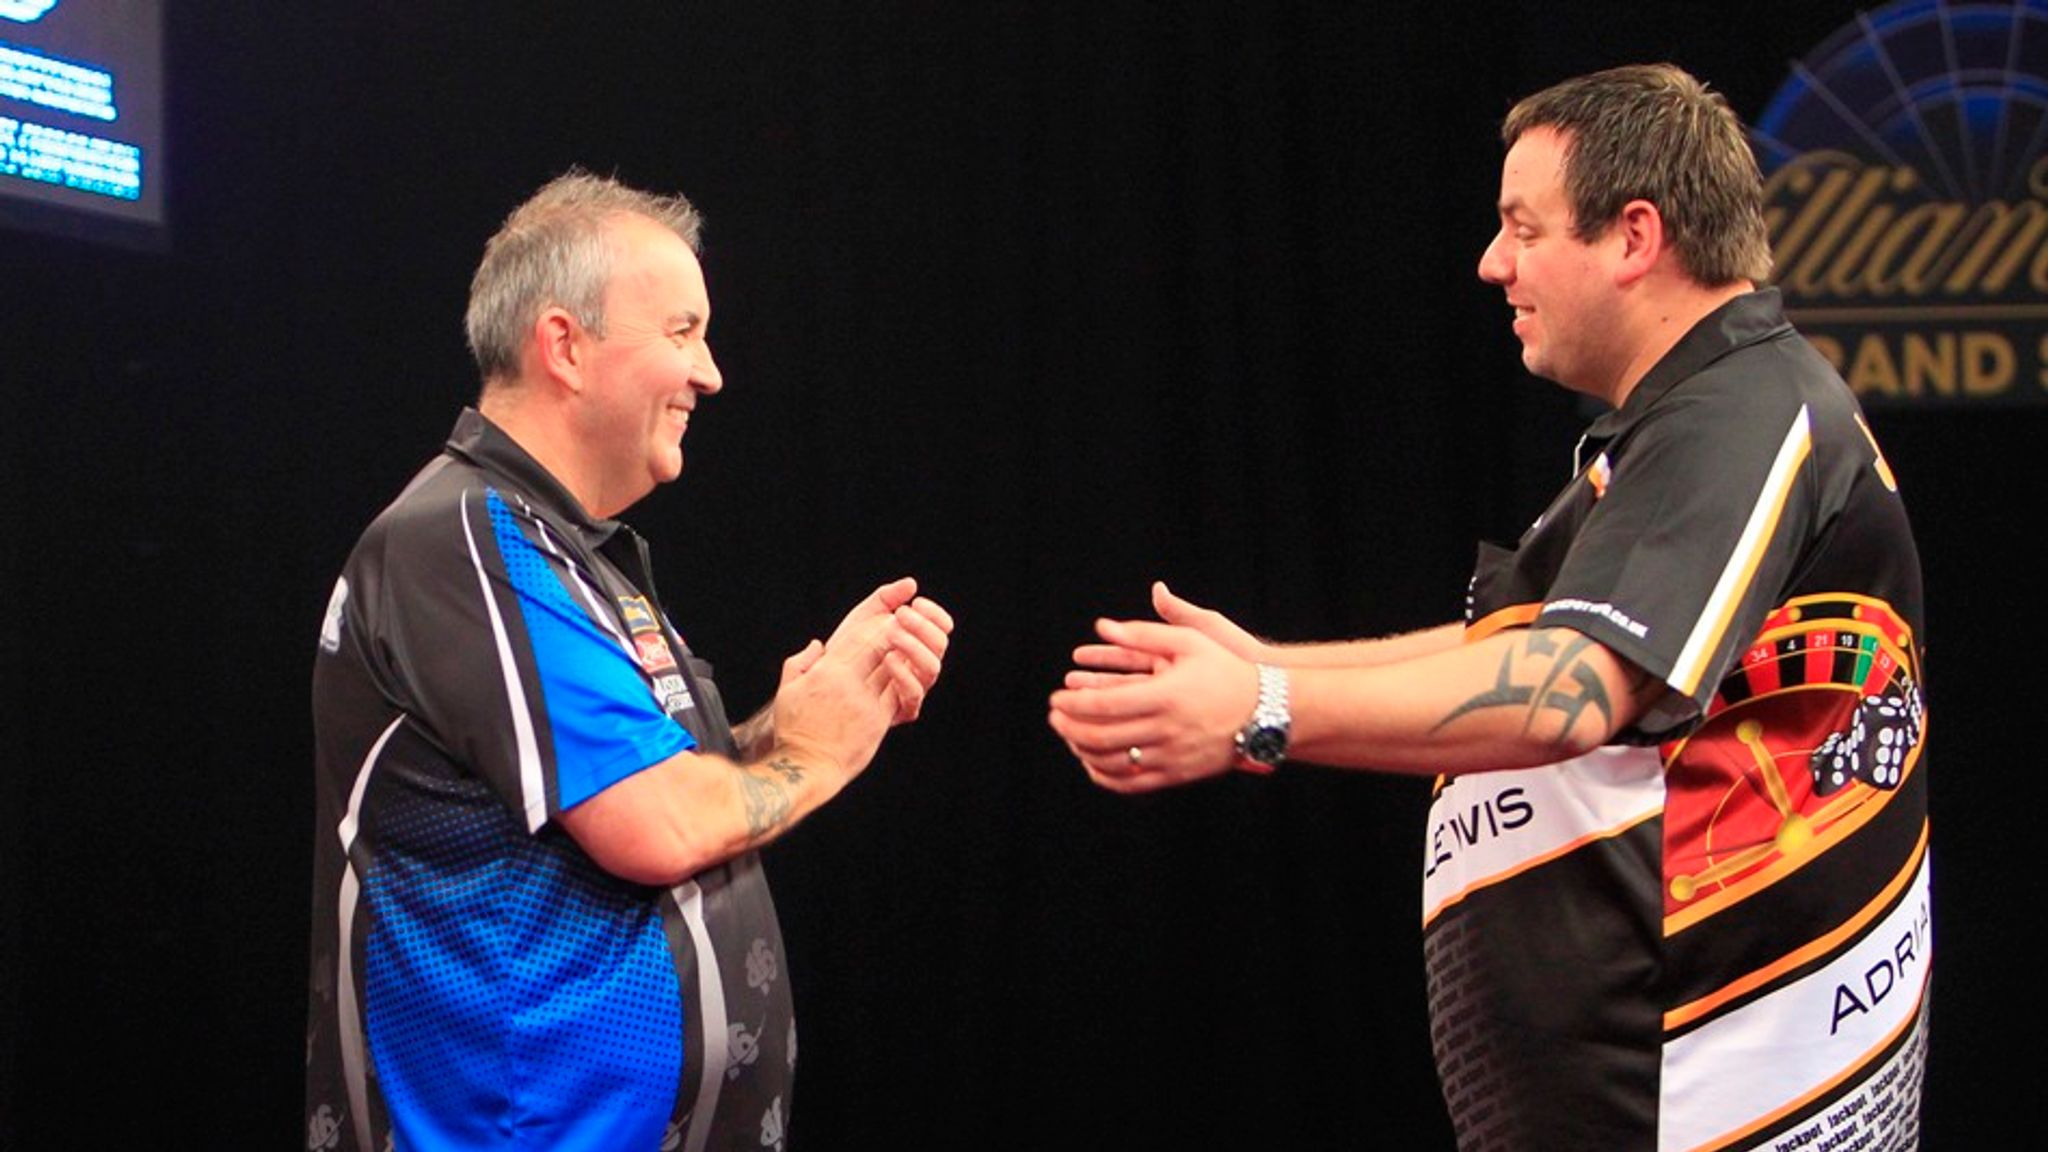 Adrian Lewis and Phil Taylor's Grand Slam of Darts 2013 clash may be the greatest match ever...